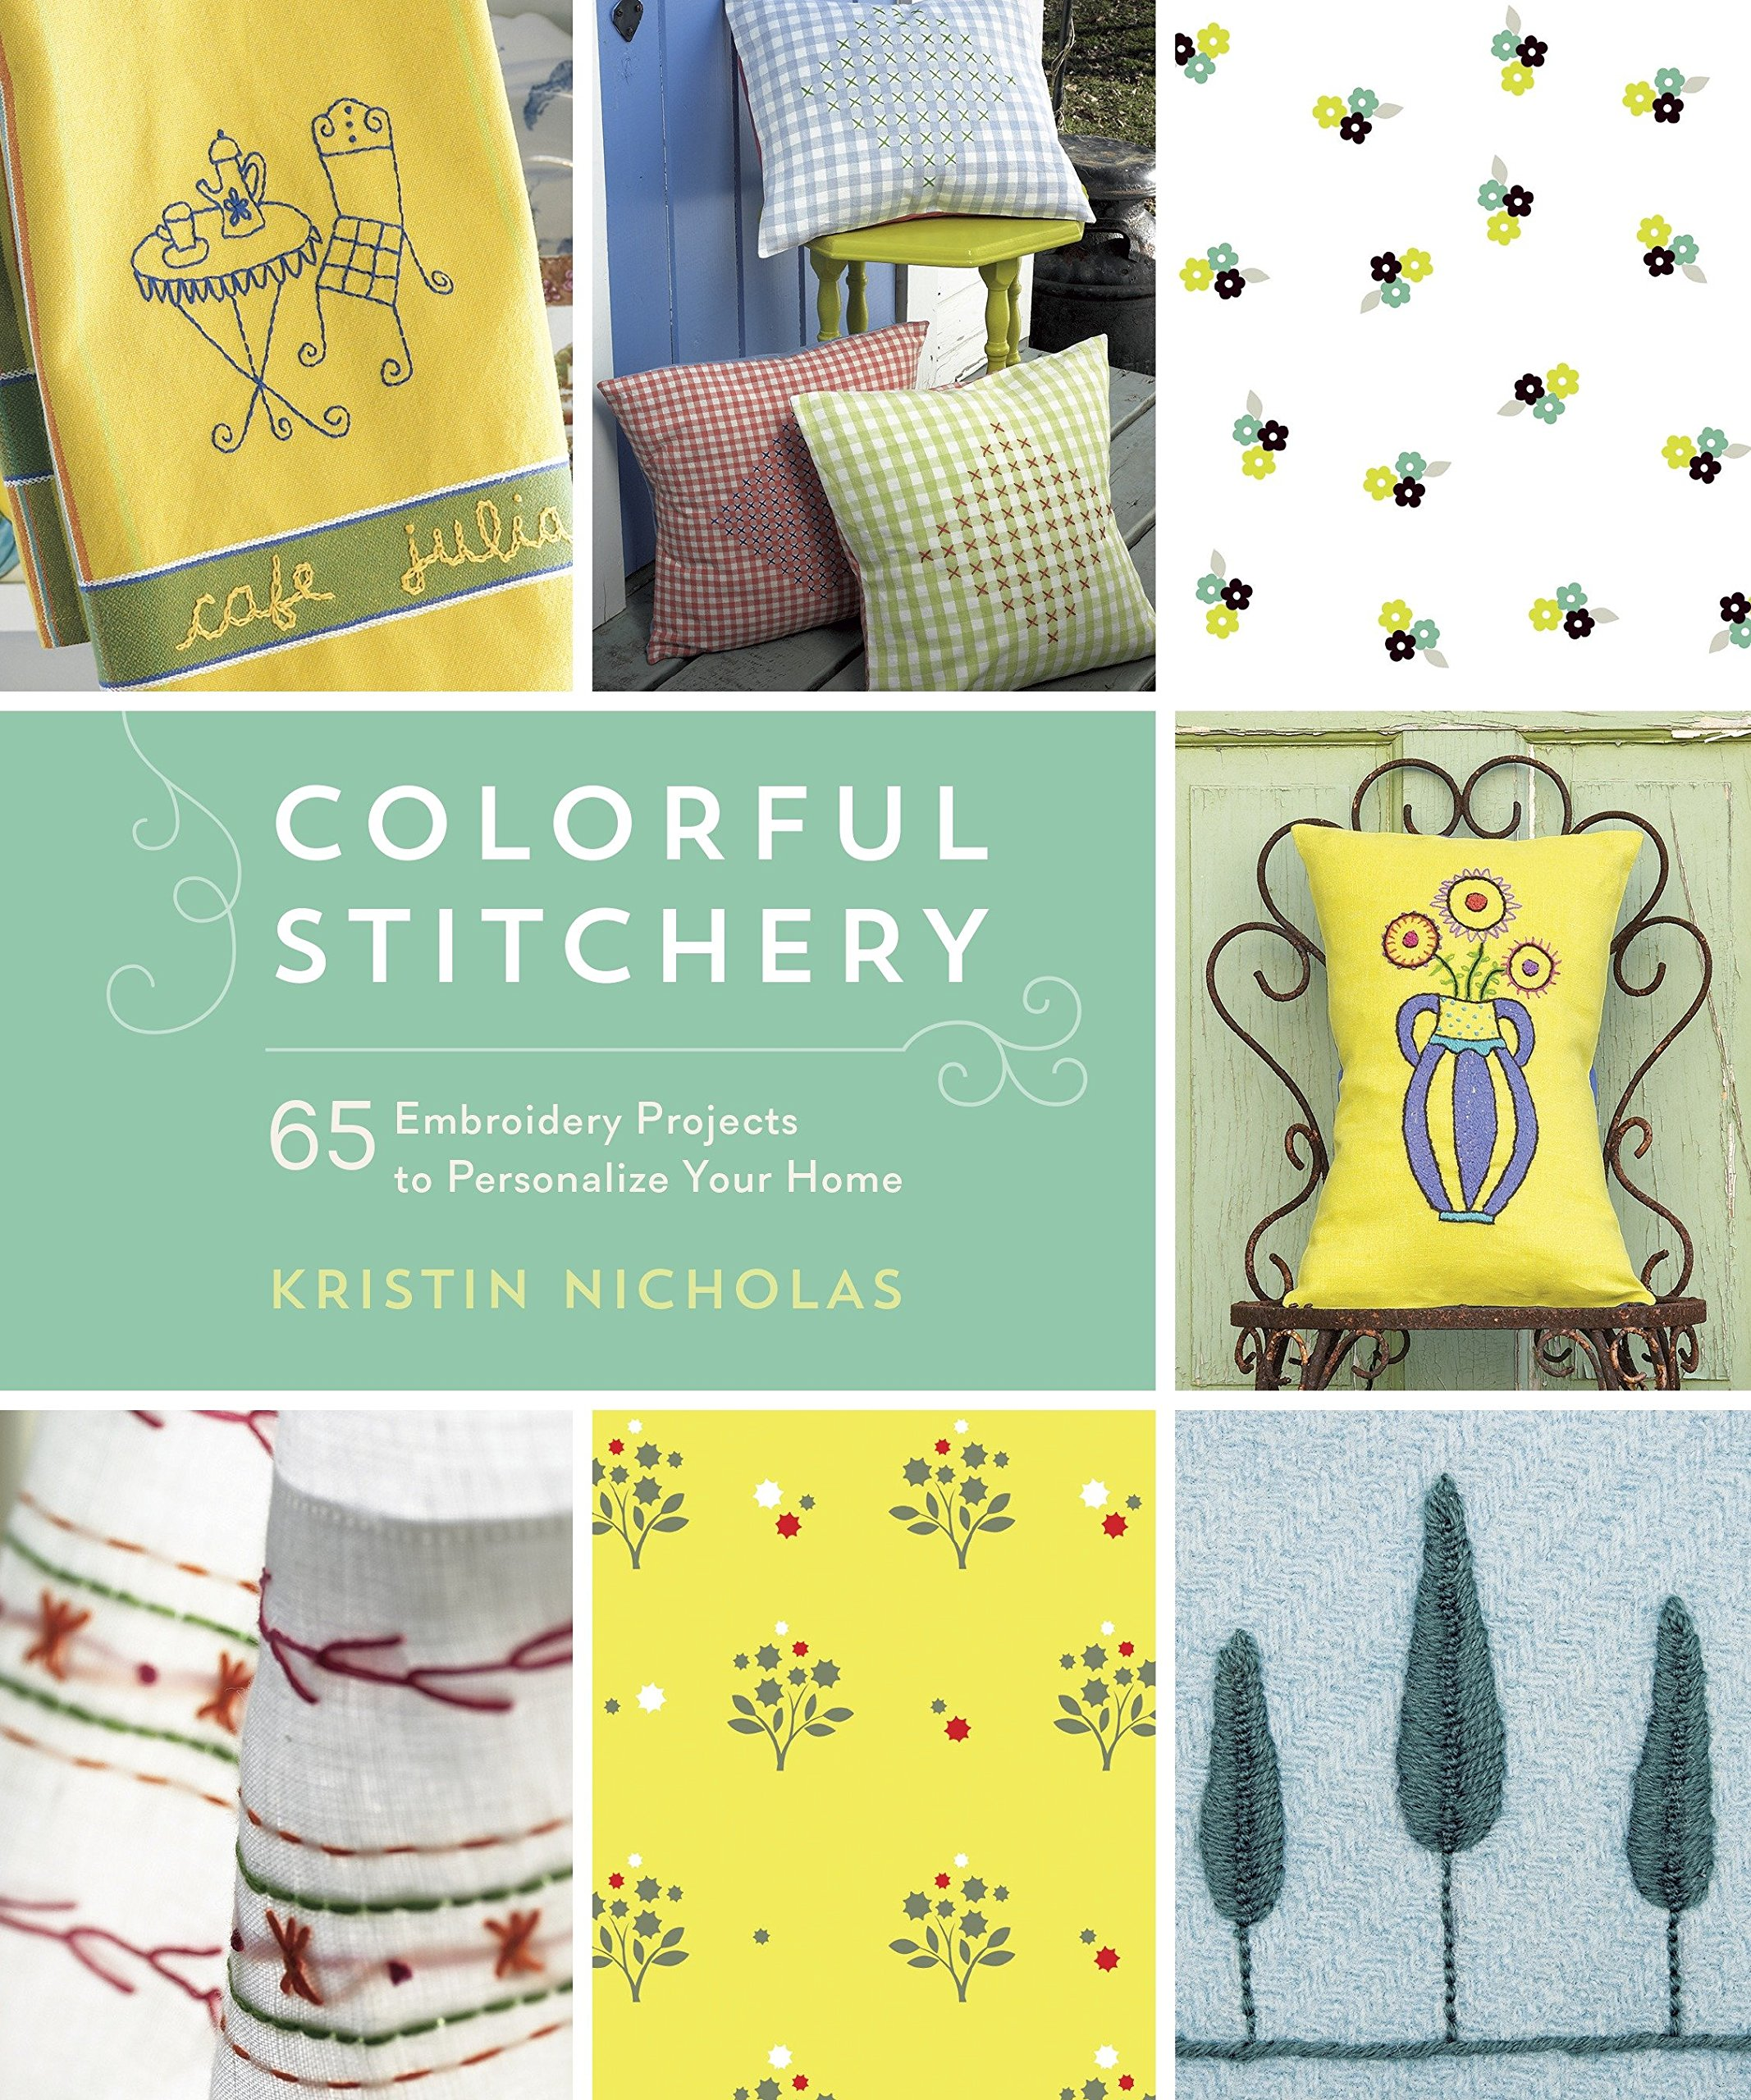 Colorful Stitchery 65 Embroidery Projects To Personalize Your Home